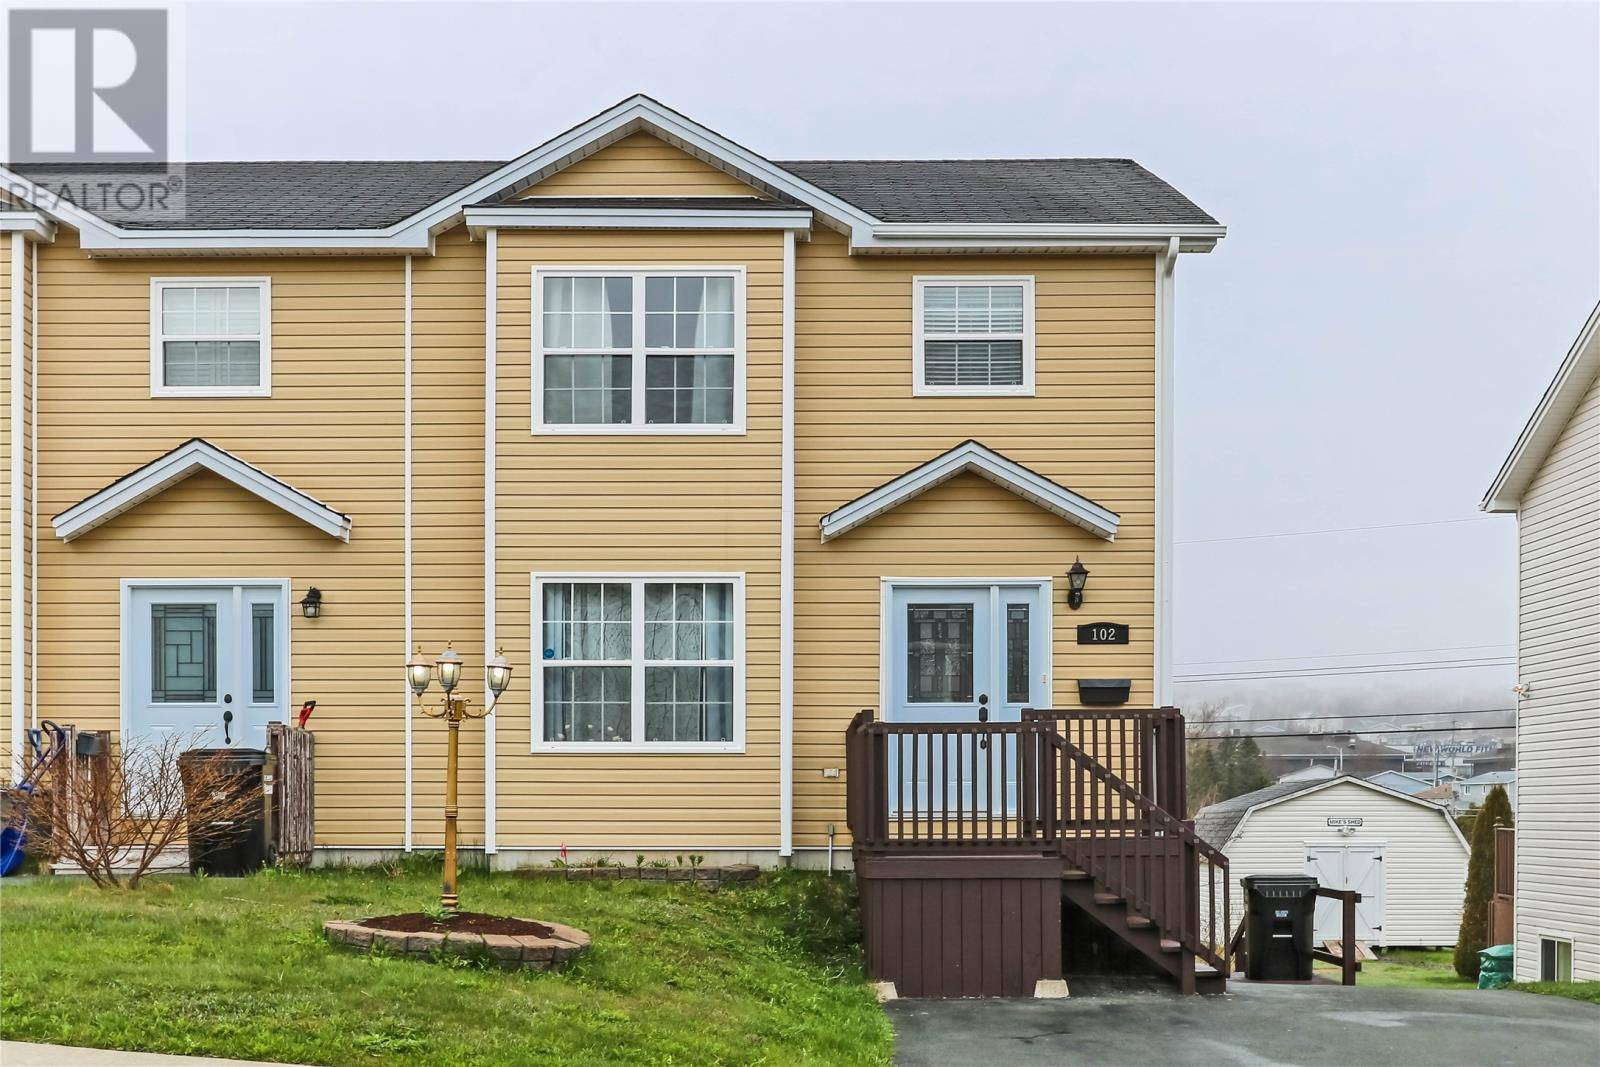 House for sale at 102 Edison Pl St. John's Newfoundland - MLS: 1200140